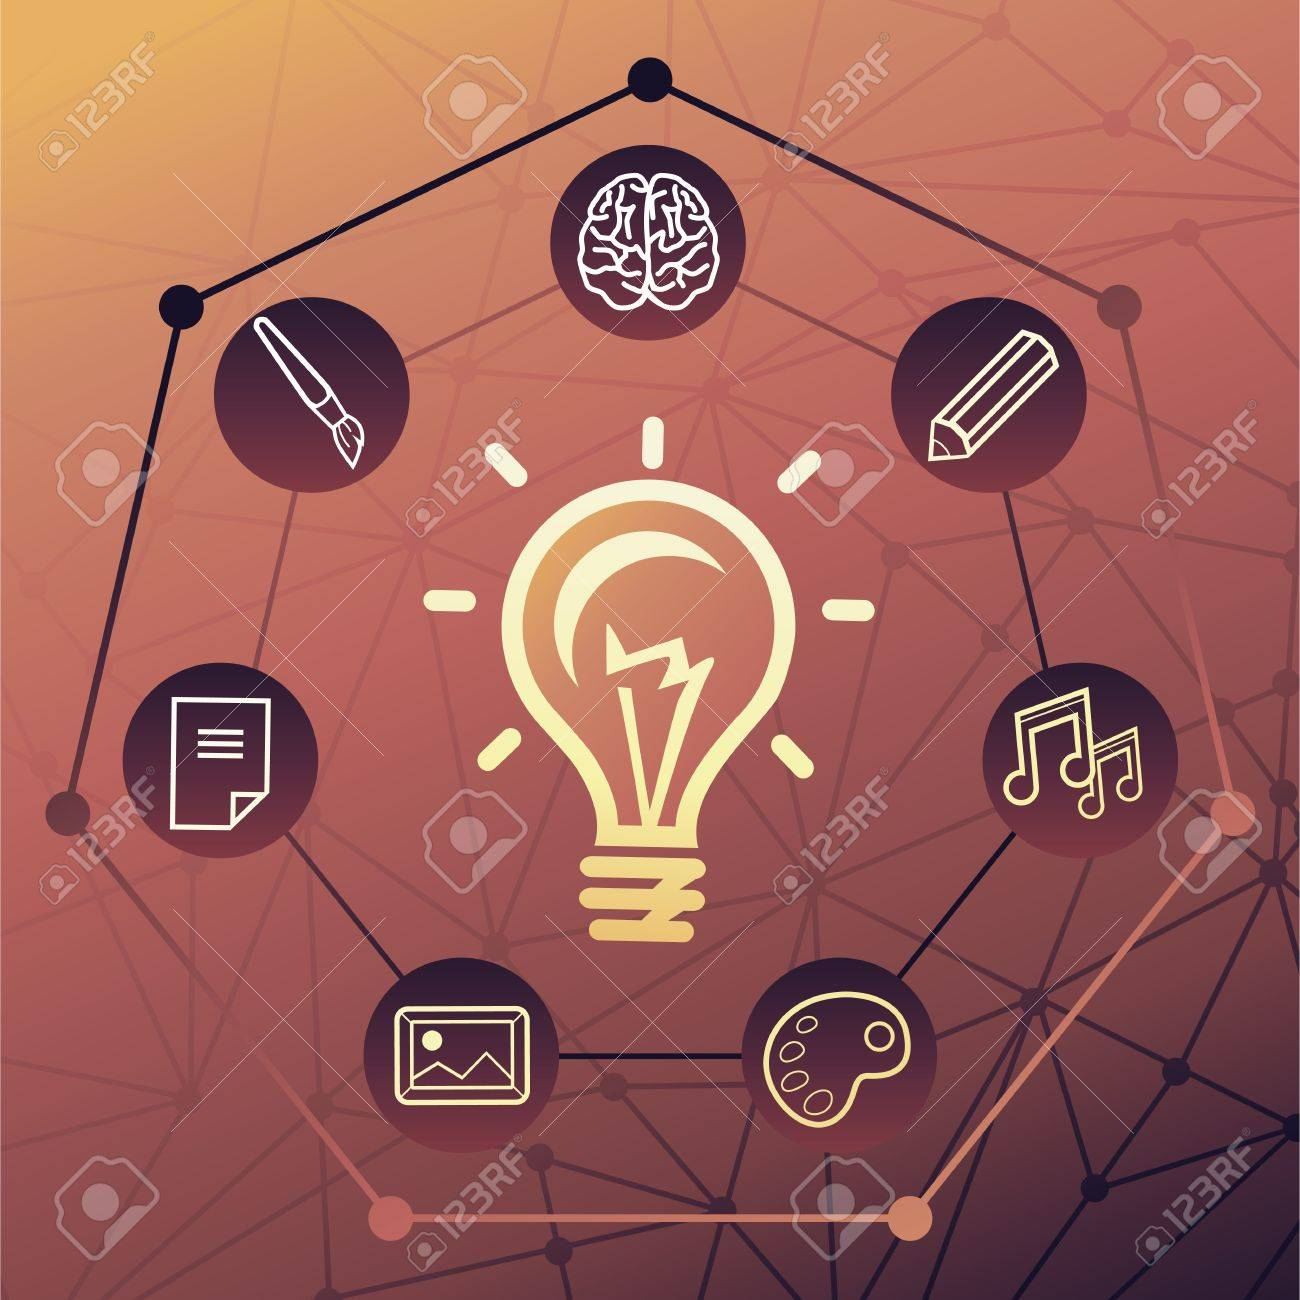 Vector idea concept - creative background with light bulb icon Stock Vector - 16307104